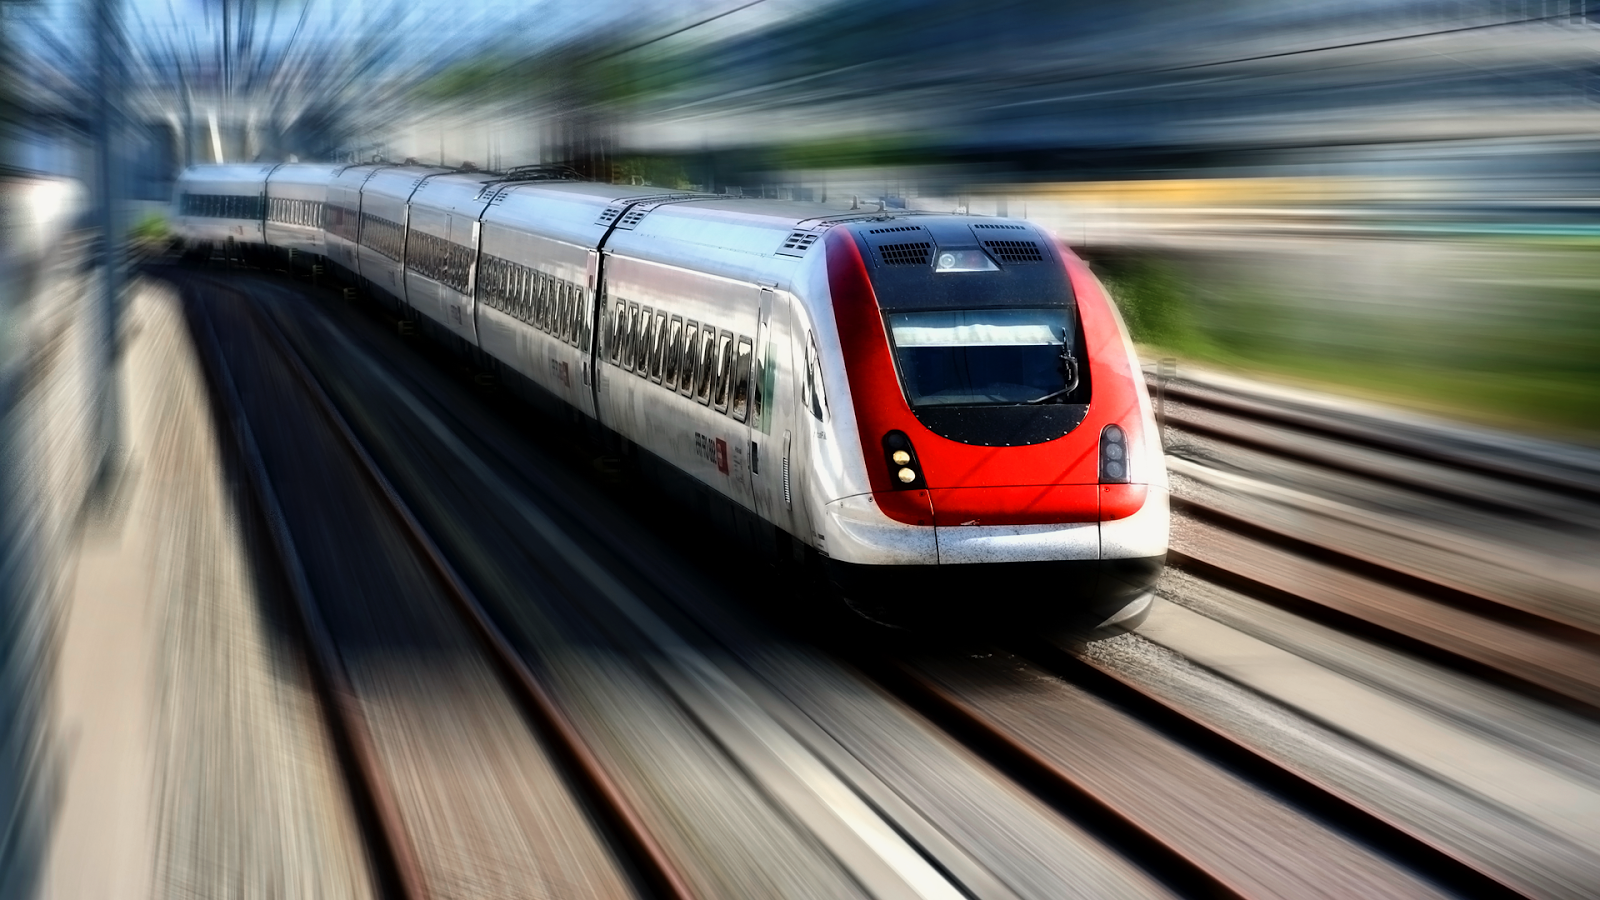 High Speed Bullet Train HD Wallpapers 11   Page 3 of 3 1600x900